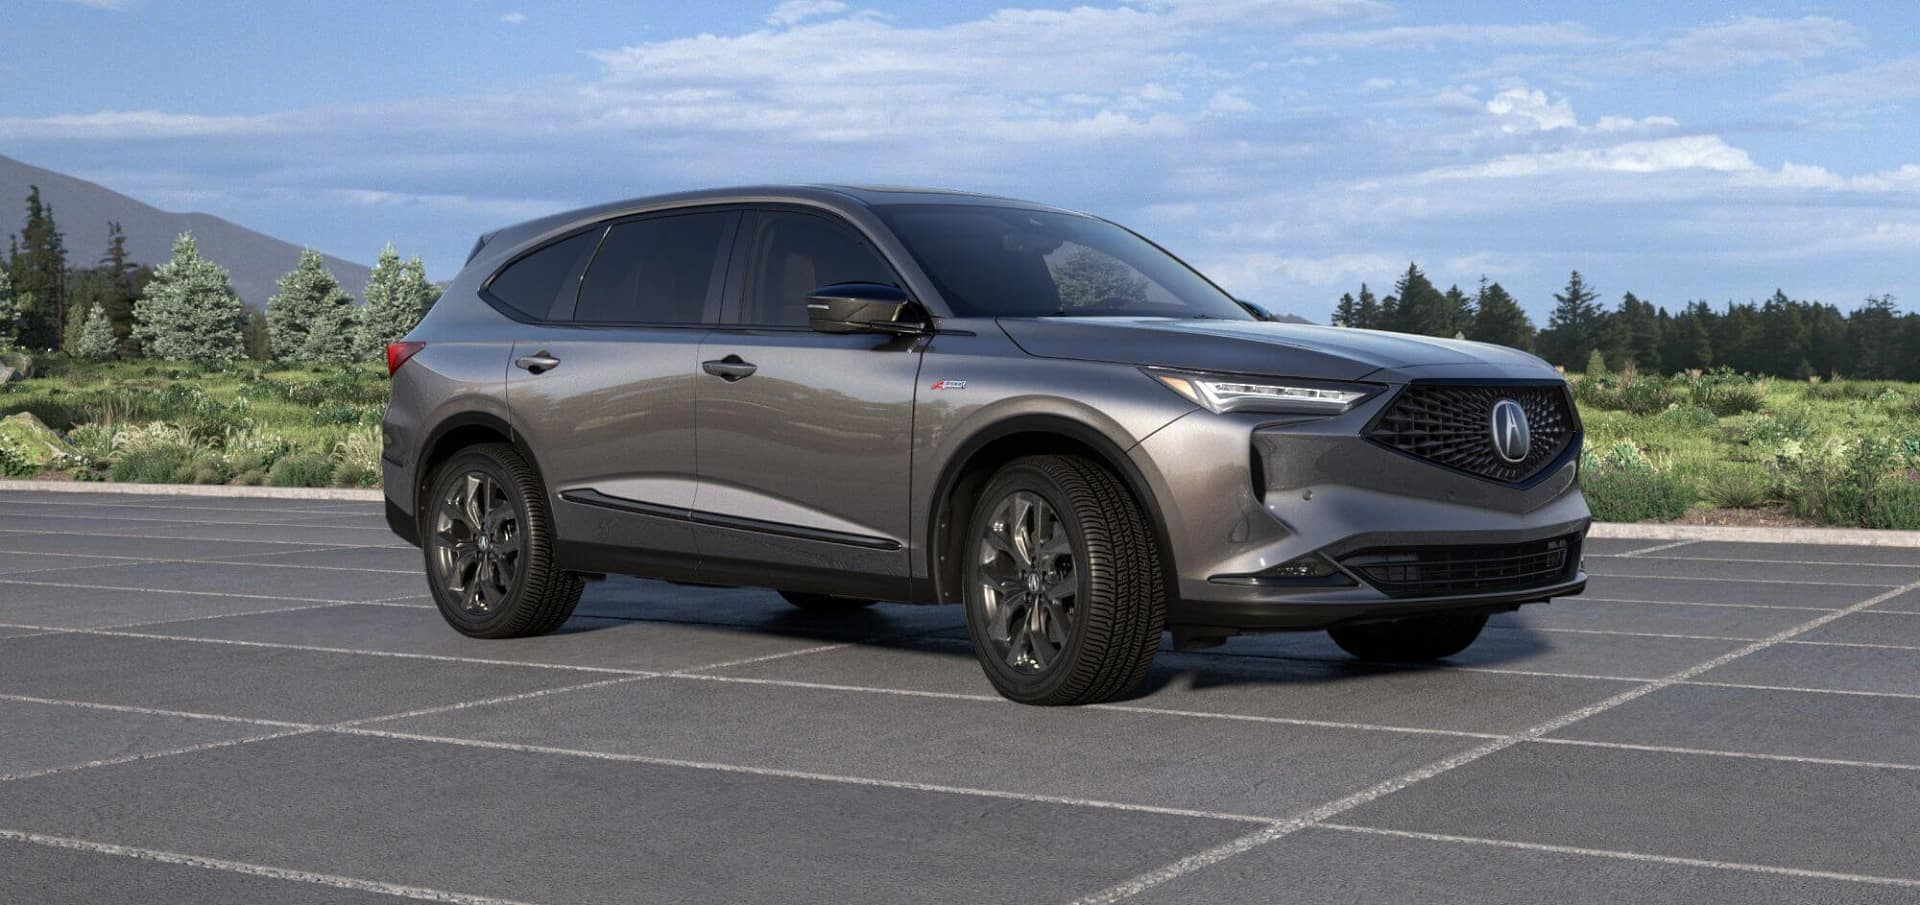 2022 Acura MDX | Friendly Acura of Middletown